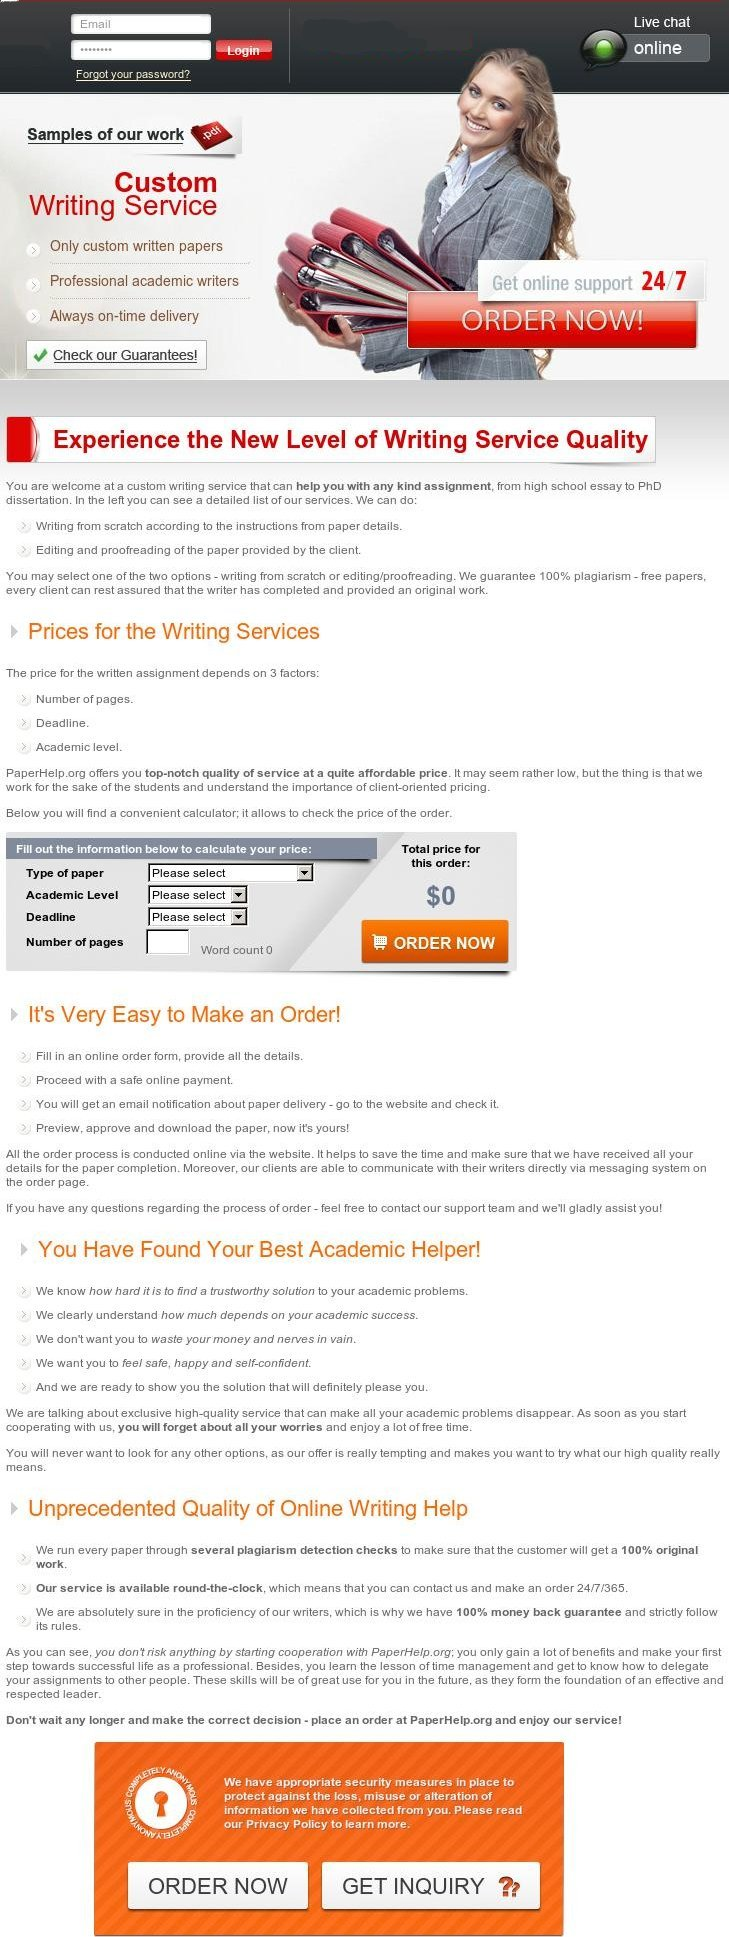 Essay on students and social services Review Essay Tackling Good essay  topics for university students CBA sample resume skills section  computer programmer resume examples